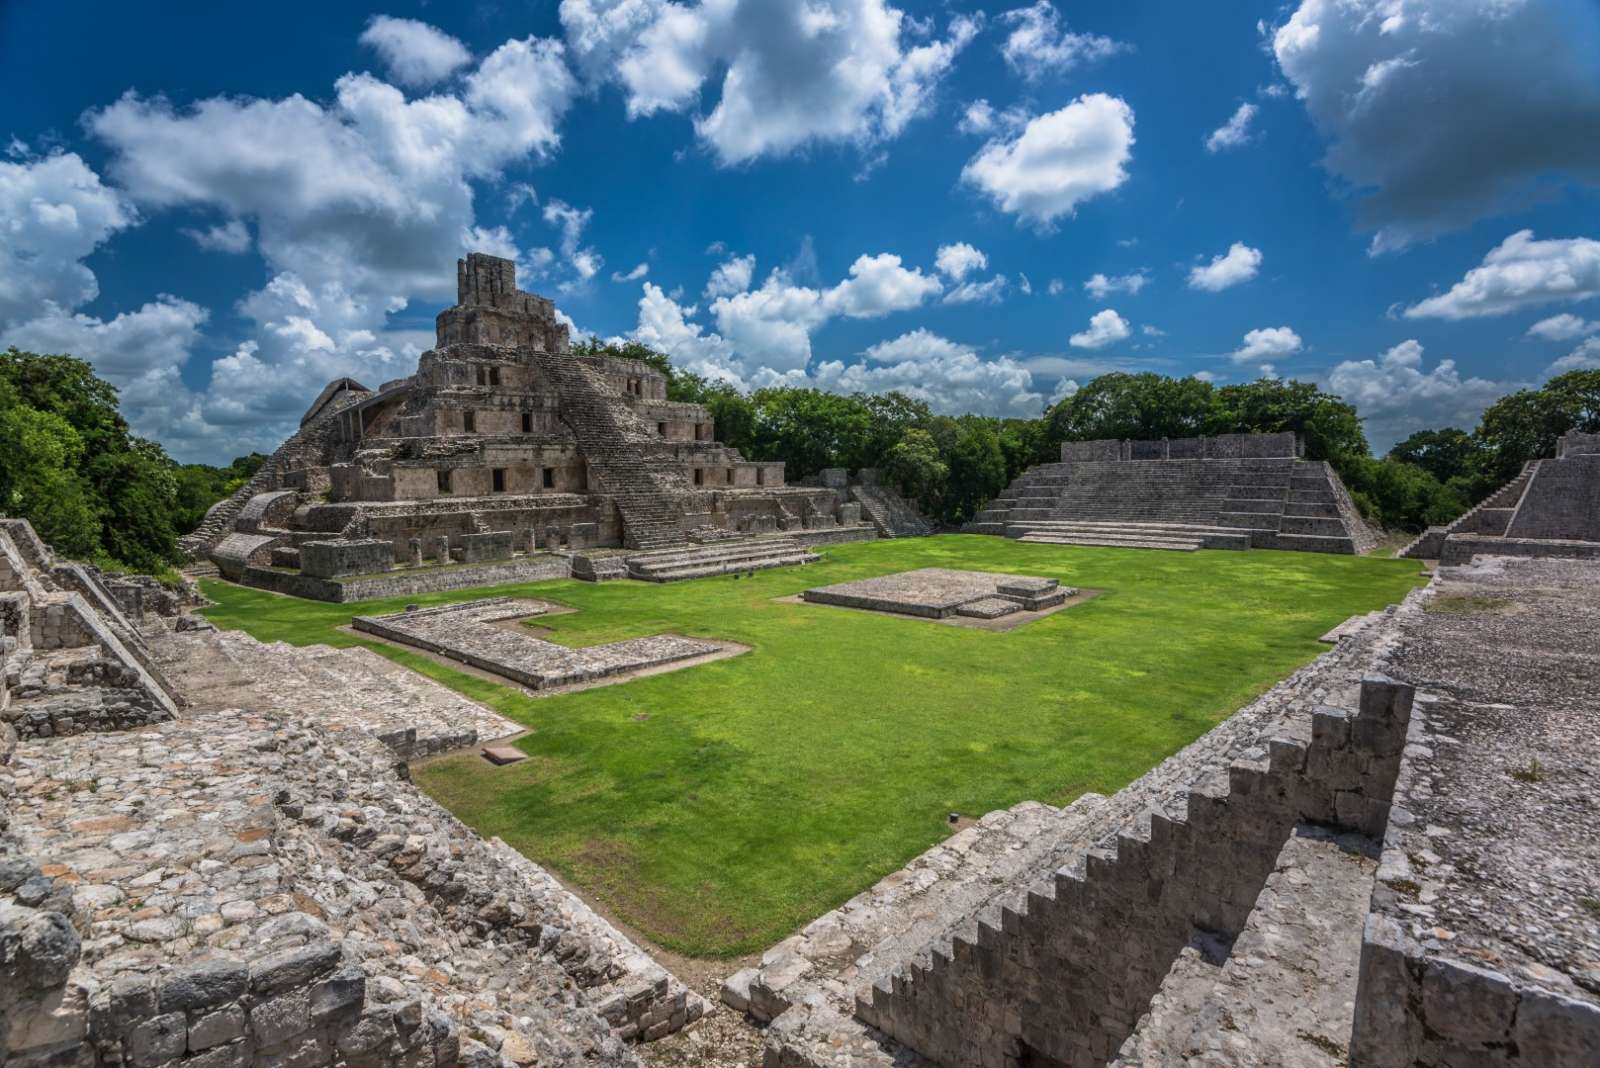 The Mayan ruins of Edzna near Campeche Mexico